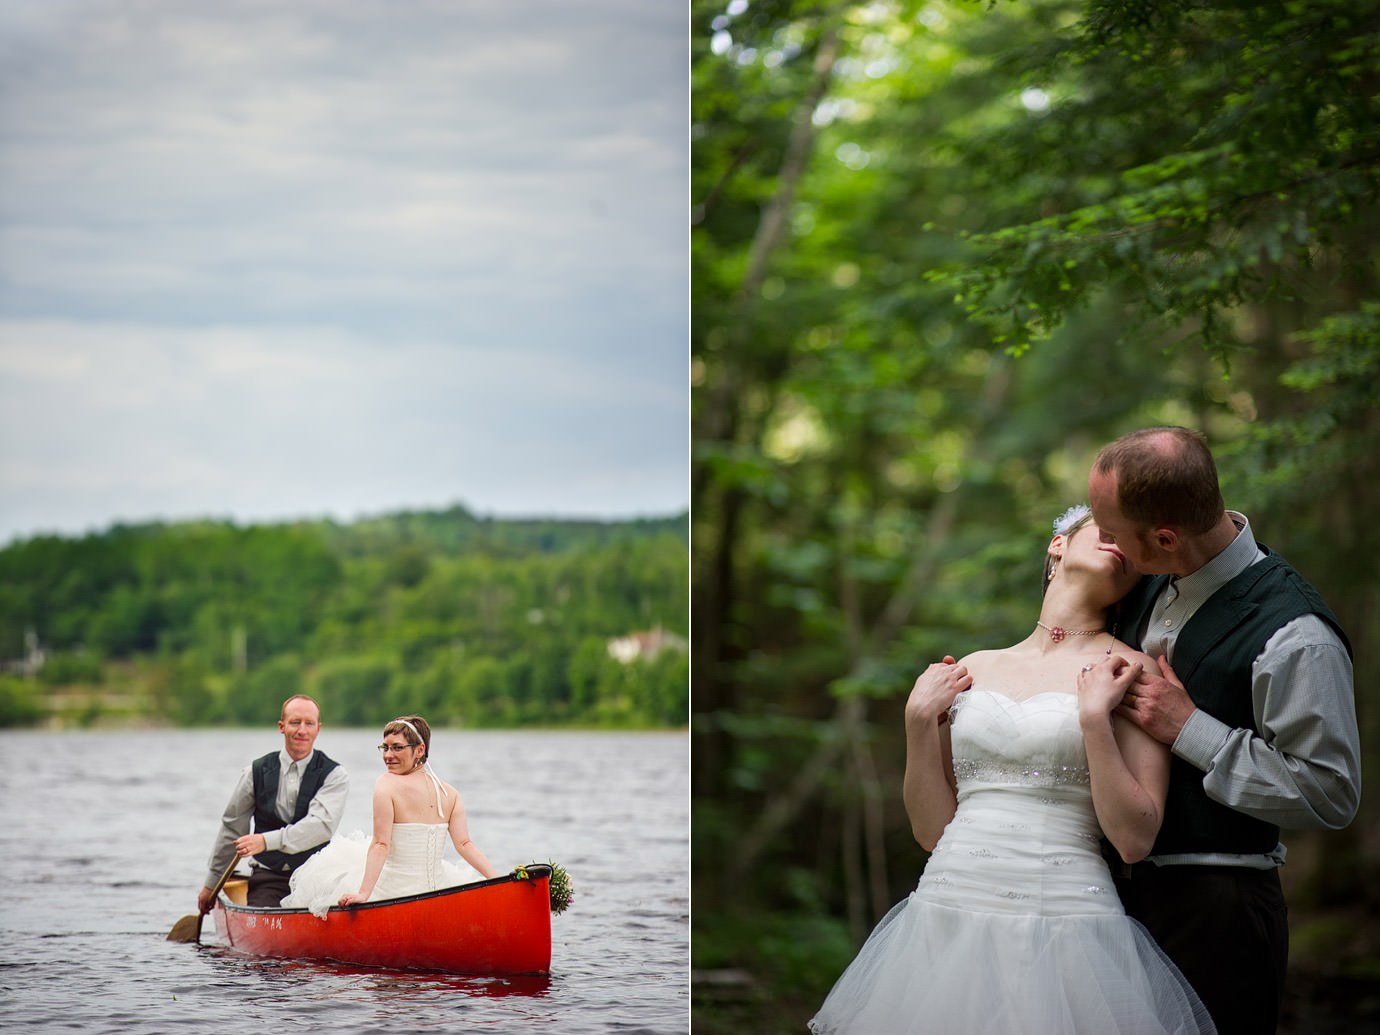 Halifax-Wedding-Photographers-Windhorse-Farm-J+T-39